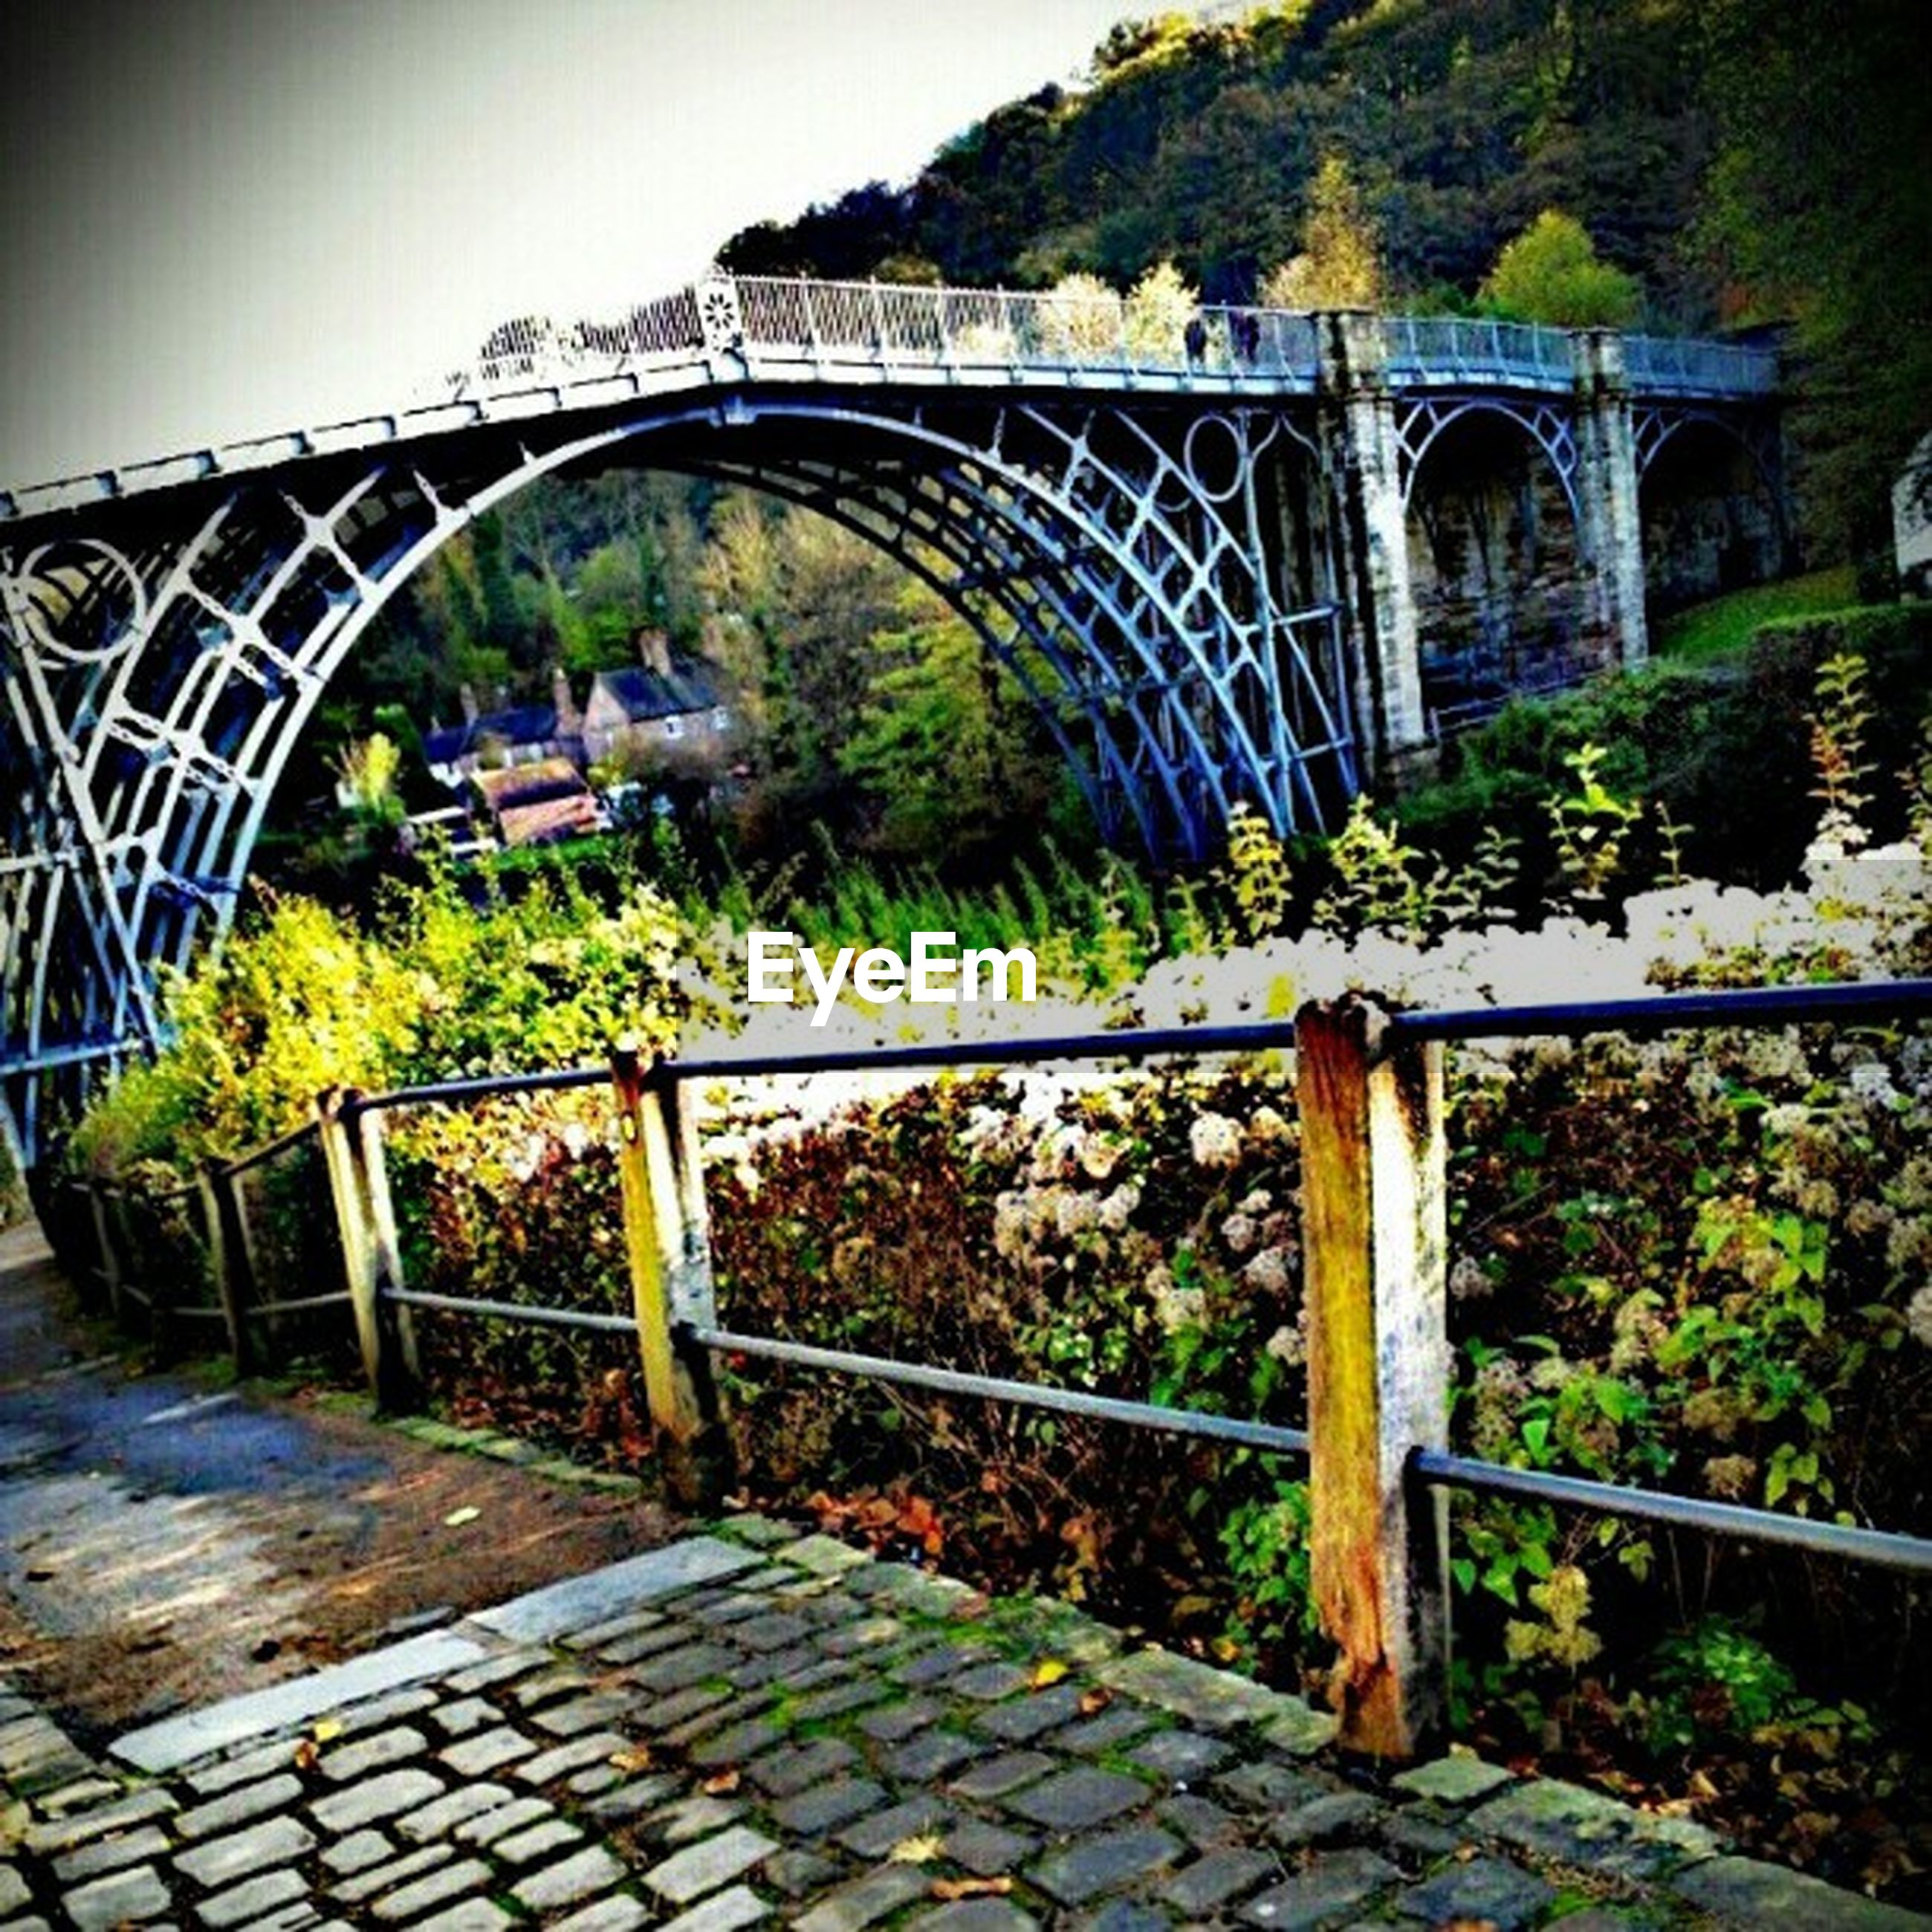 architecture, built structure, bridge - man made structure, connection, arch, railing, footbridge, tree, plant, metal, bridge, transportation, steps, arch bridge, building exterior, steps and staircases, engineering, growth, no people, the way forward